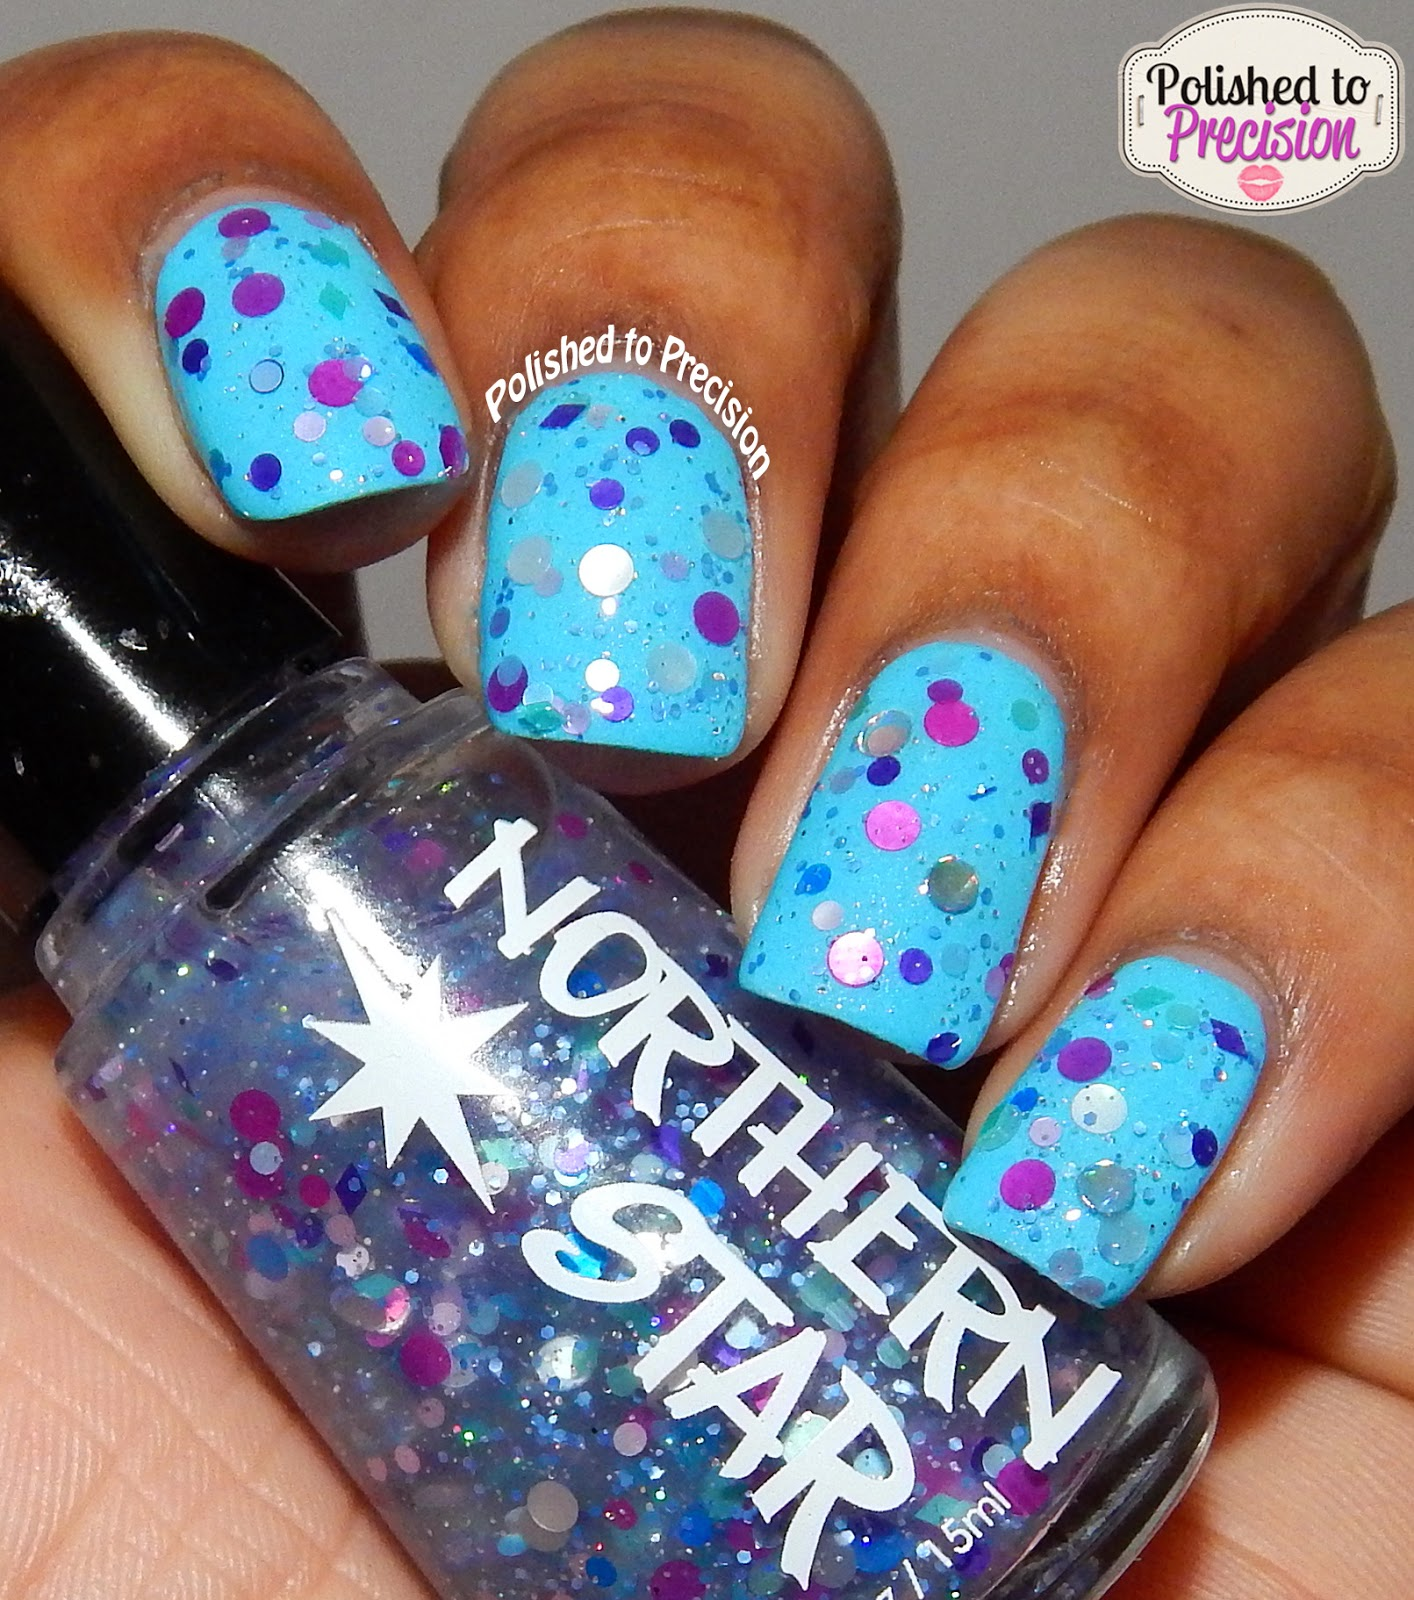 Northern Star Polish Impossible Things